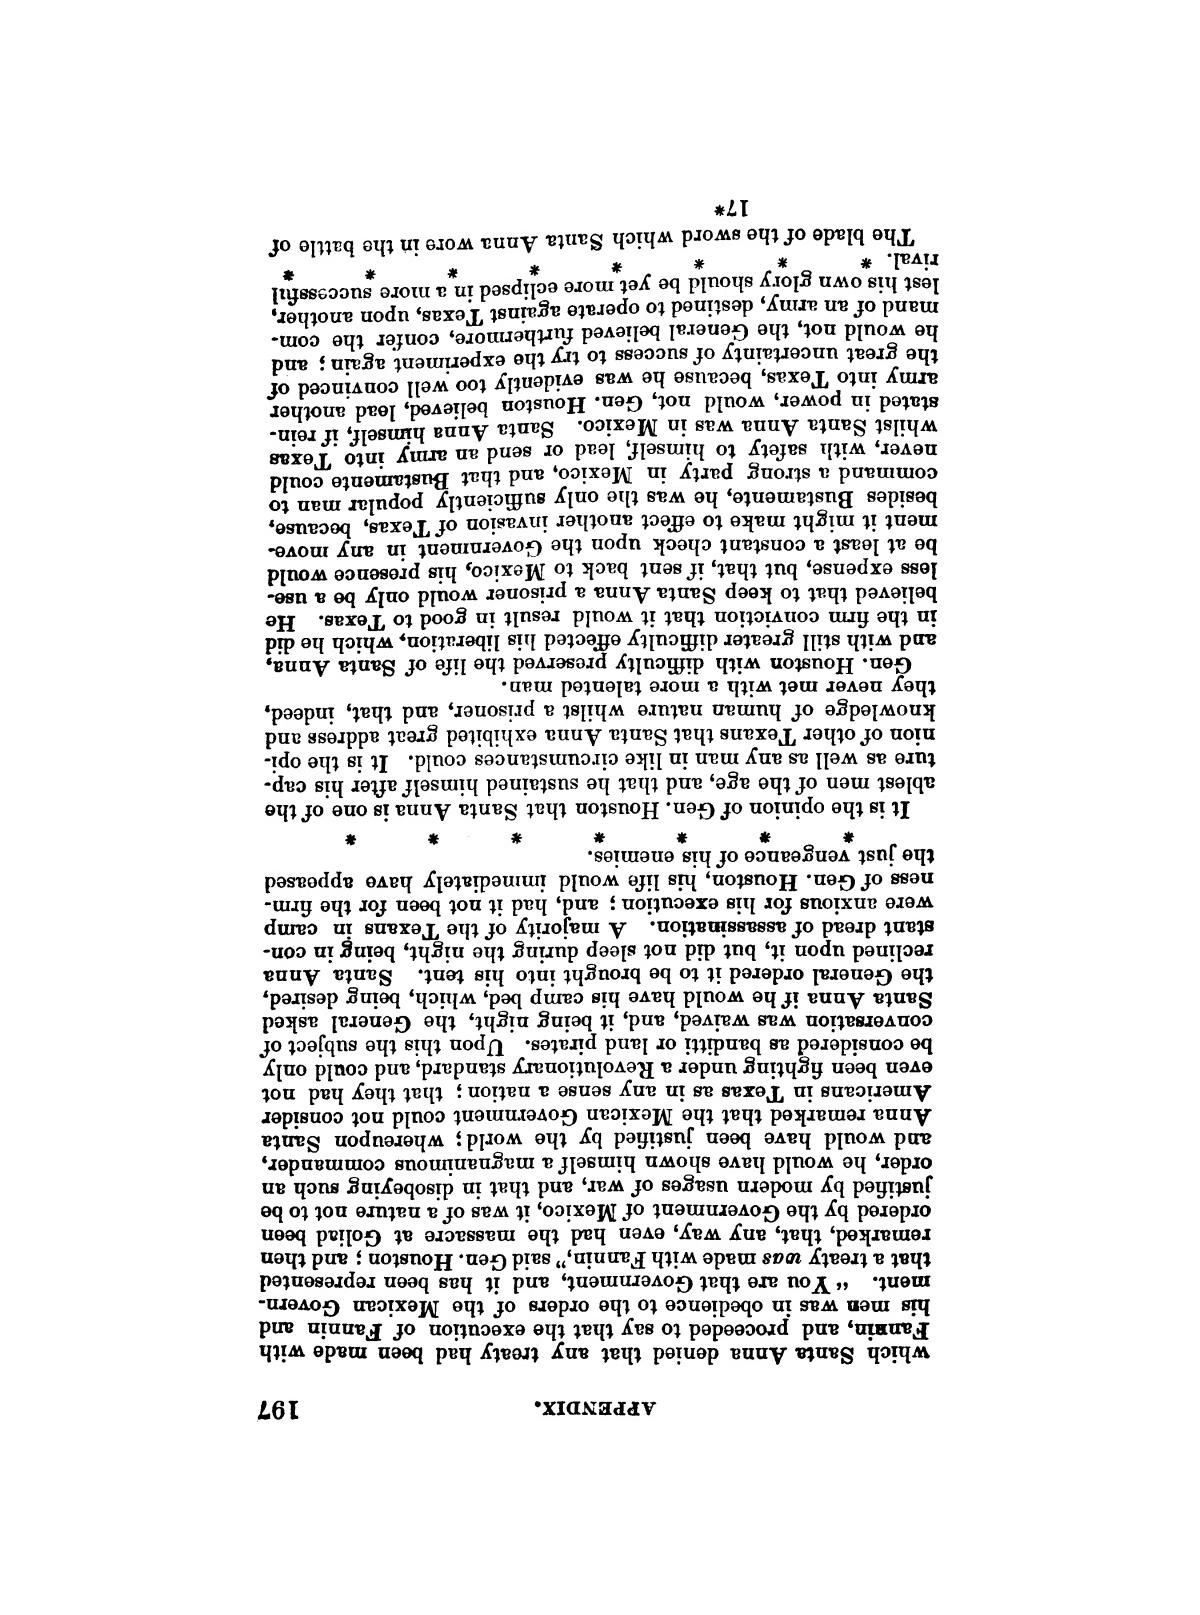 History of the Revolution in Texas, Particularly of the War of 1835 & '36; Together With the Latest Geographical, Topographical, and Statistical Accounts of the Country, From the Most Authentic Sources. Also, an Appendix.                                                                                                      [Sequence #]: 209 of 227